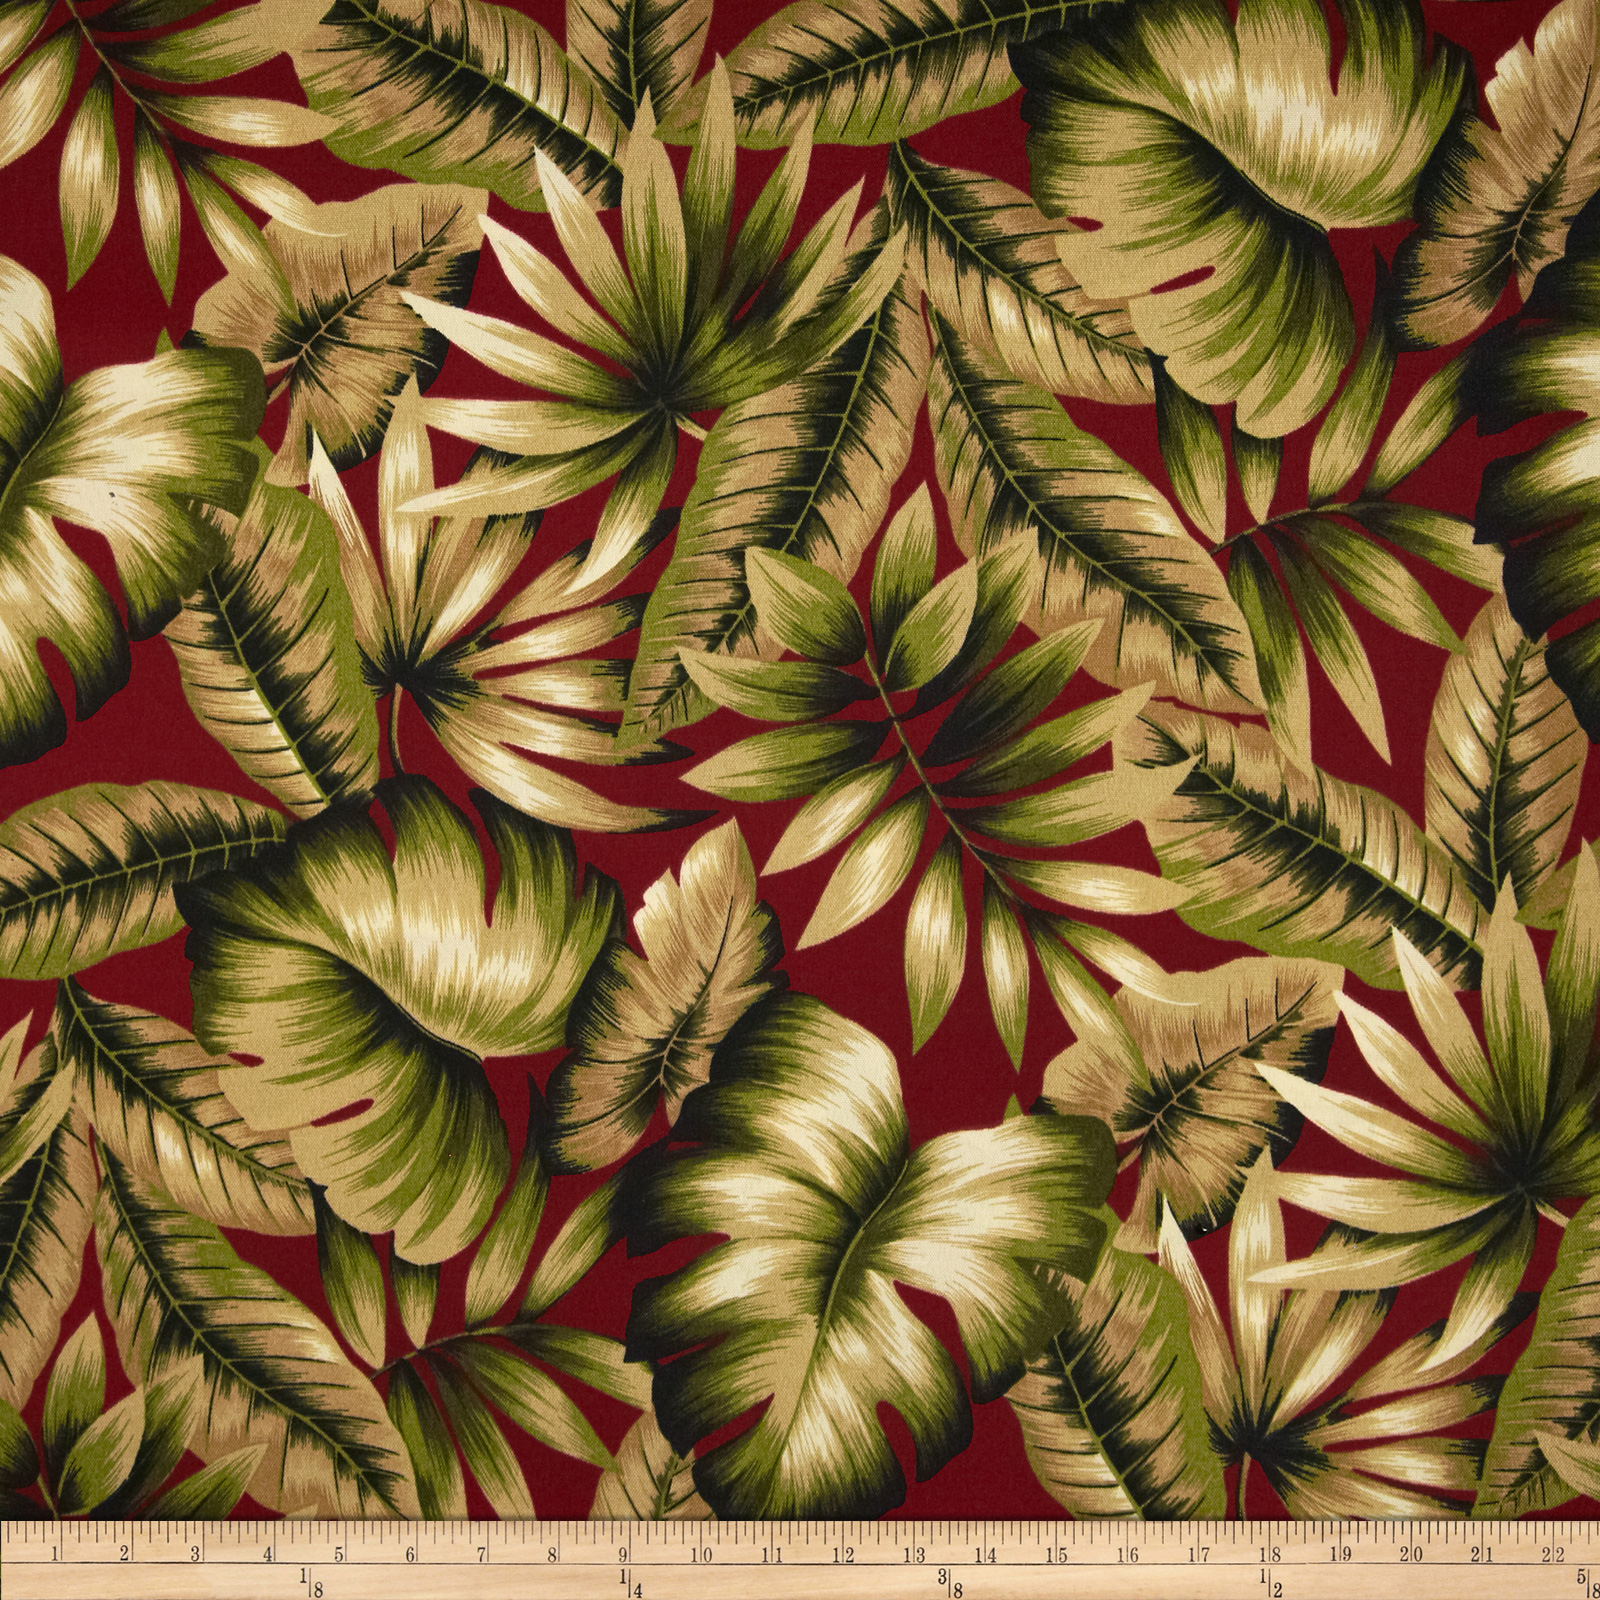 Richloom Solarium Outdoor Botanical Red Fabric